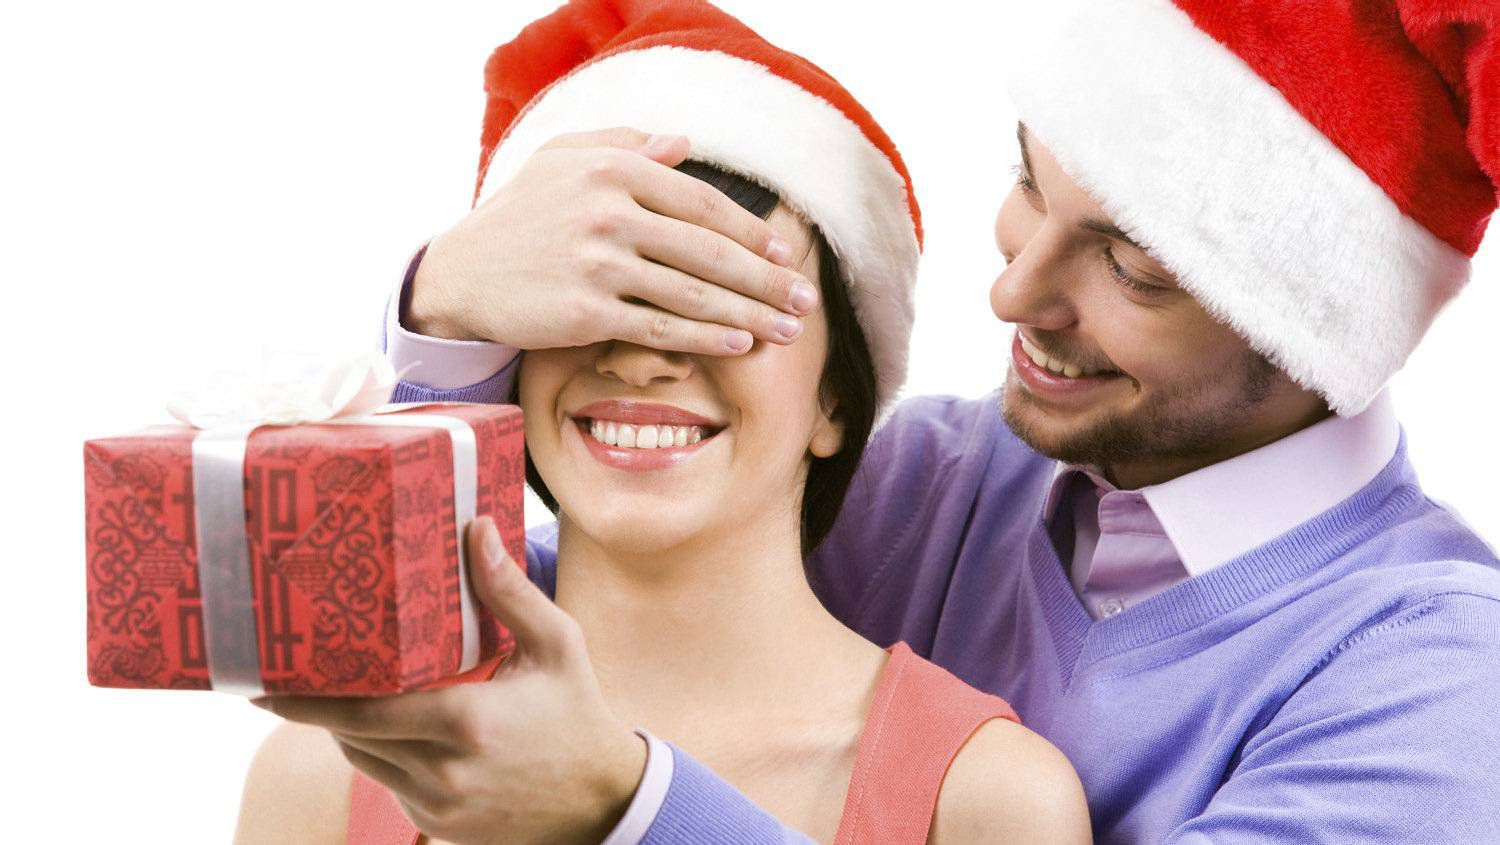 Christmas Facial.The Dos And Don Ts Of Buying Gifts For Women The Globe And Mail